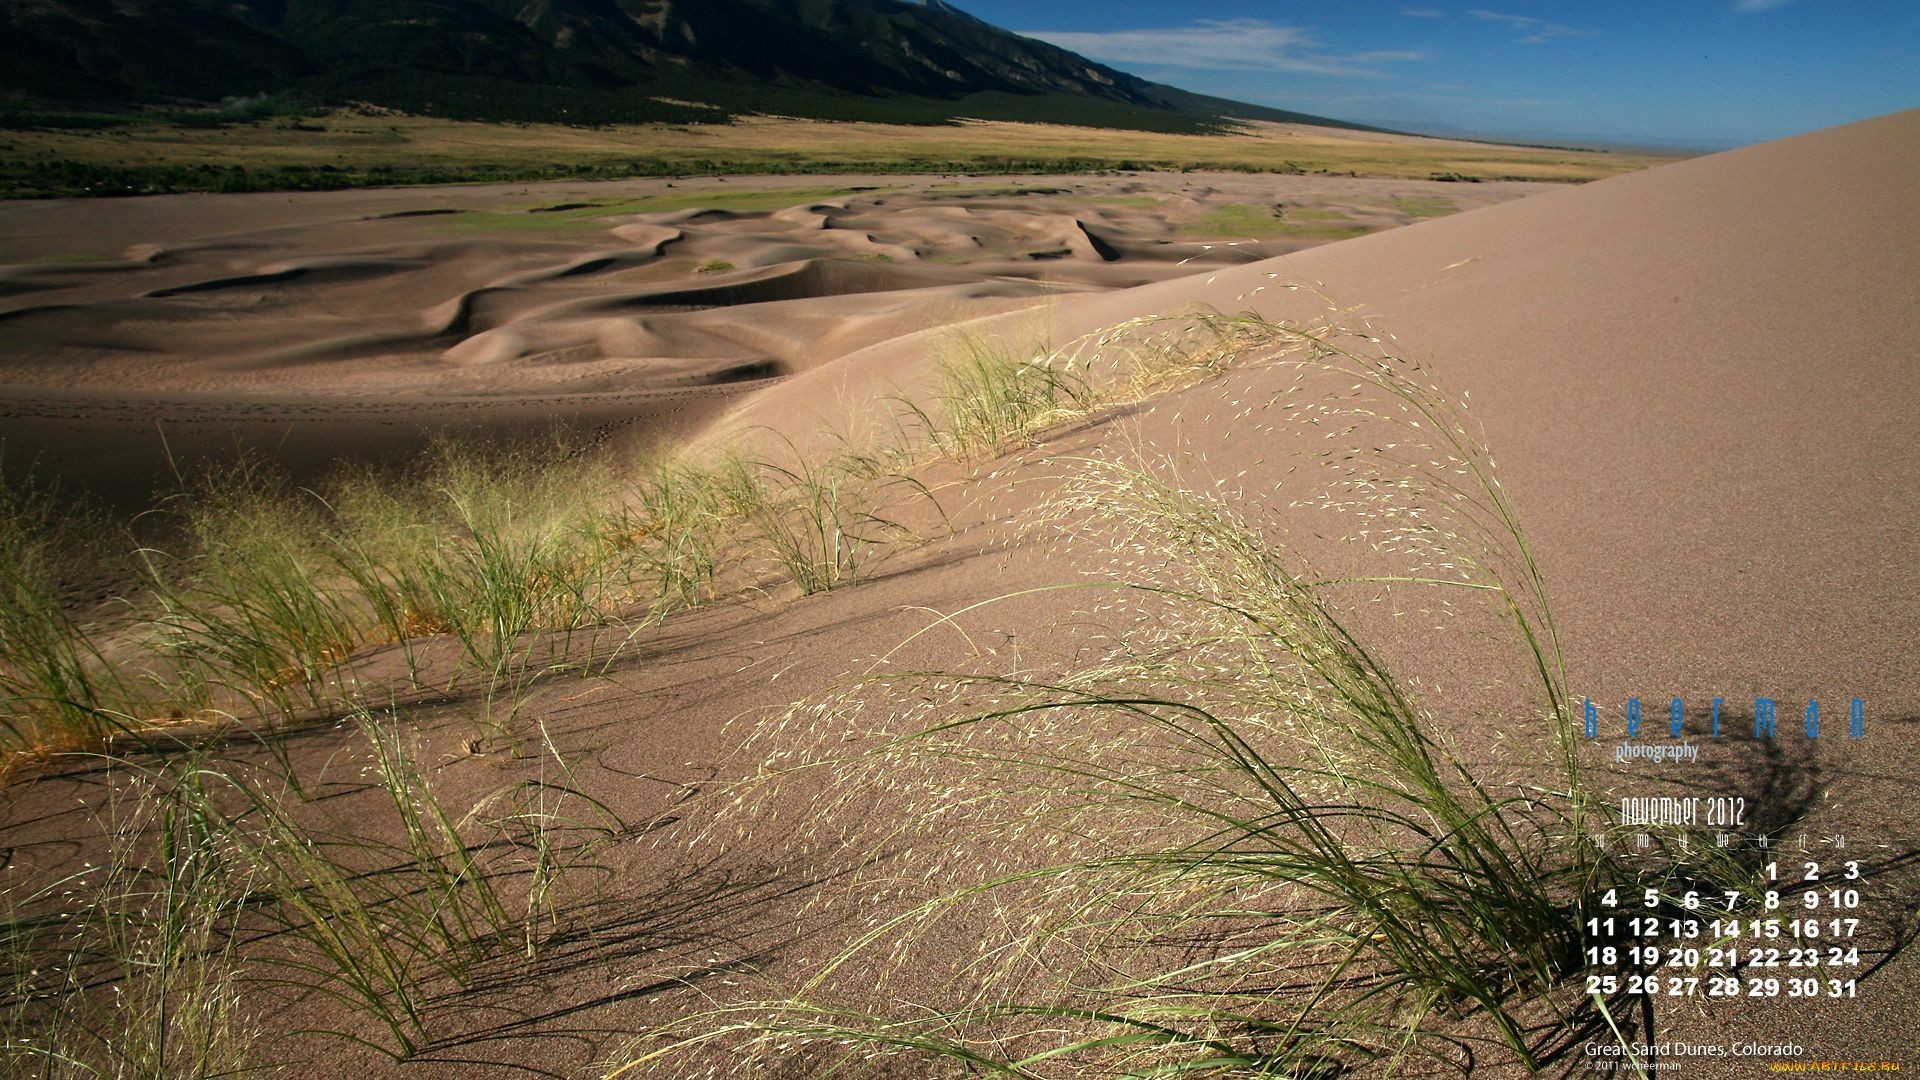 23678 download wallpaper Landscape, Grass, Sand, Desert screensavers and pictures for free